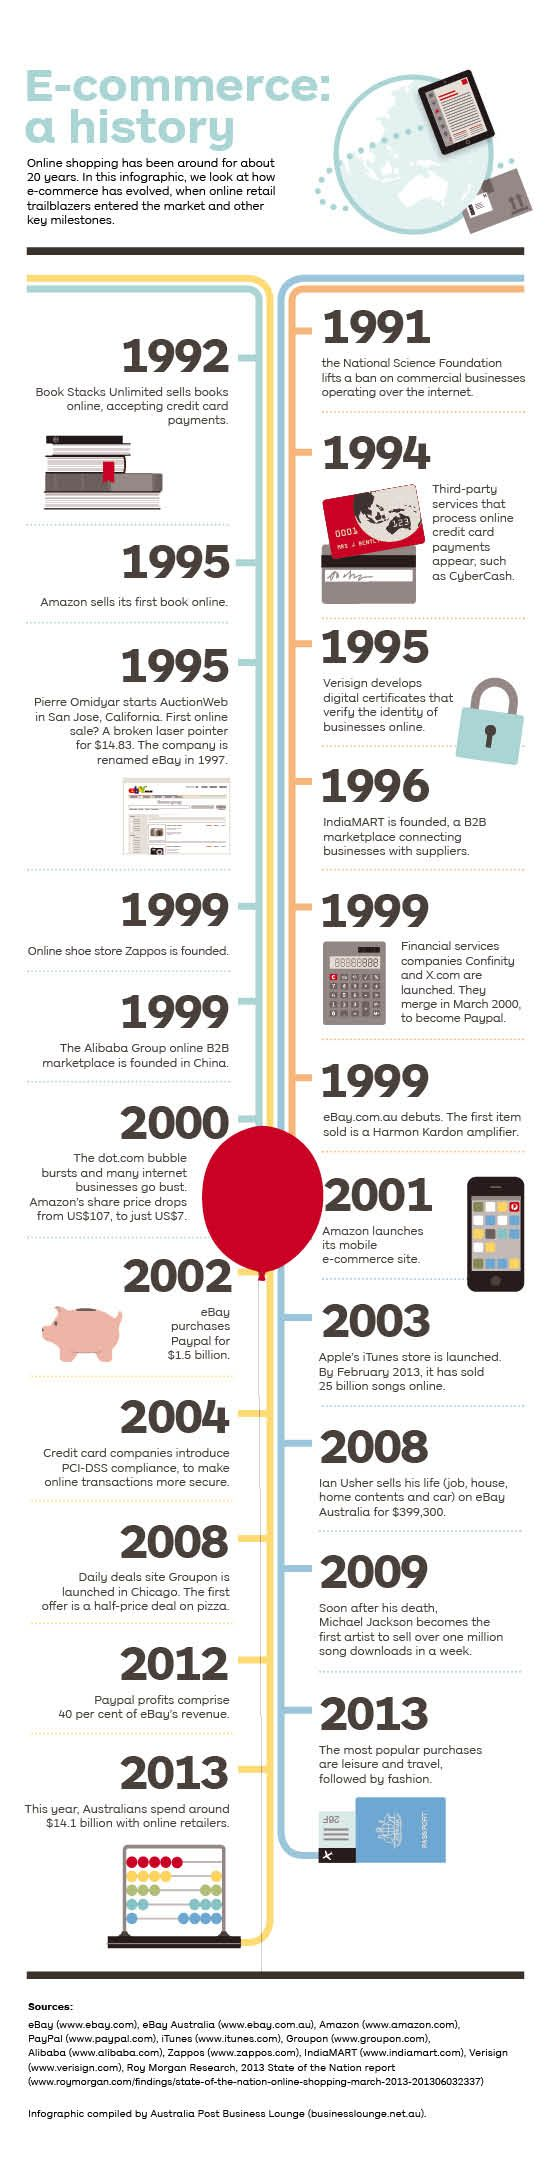 BL256 - Infographic: E-commerce: a history